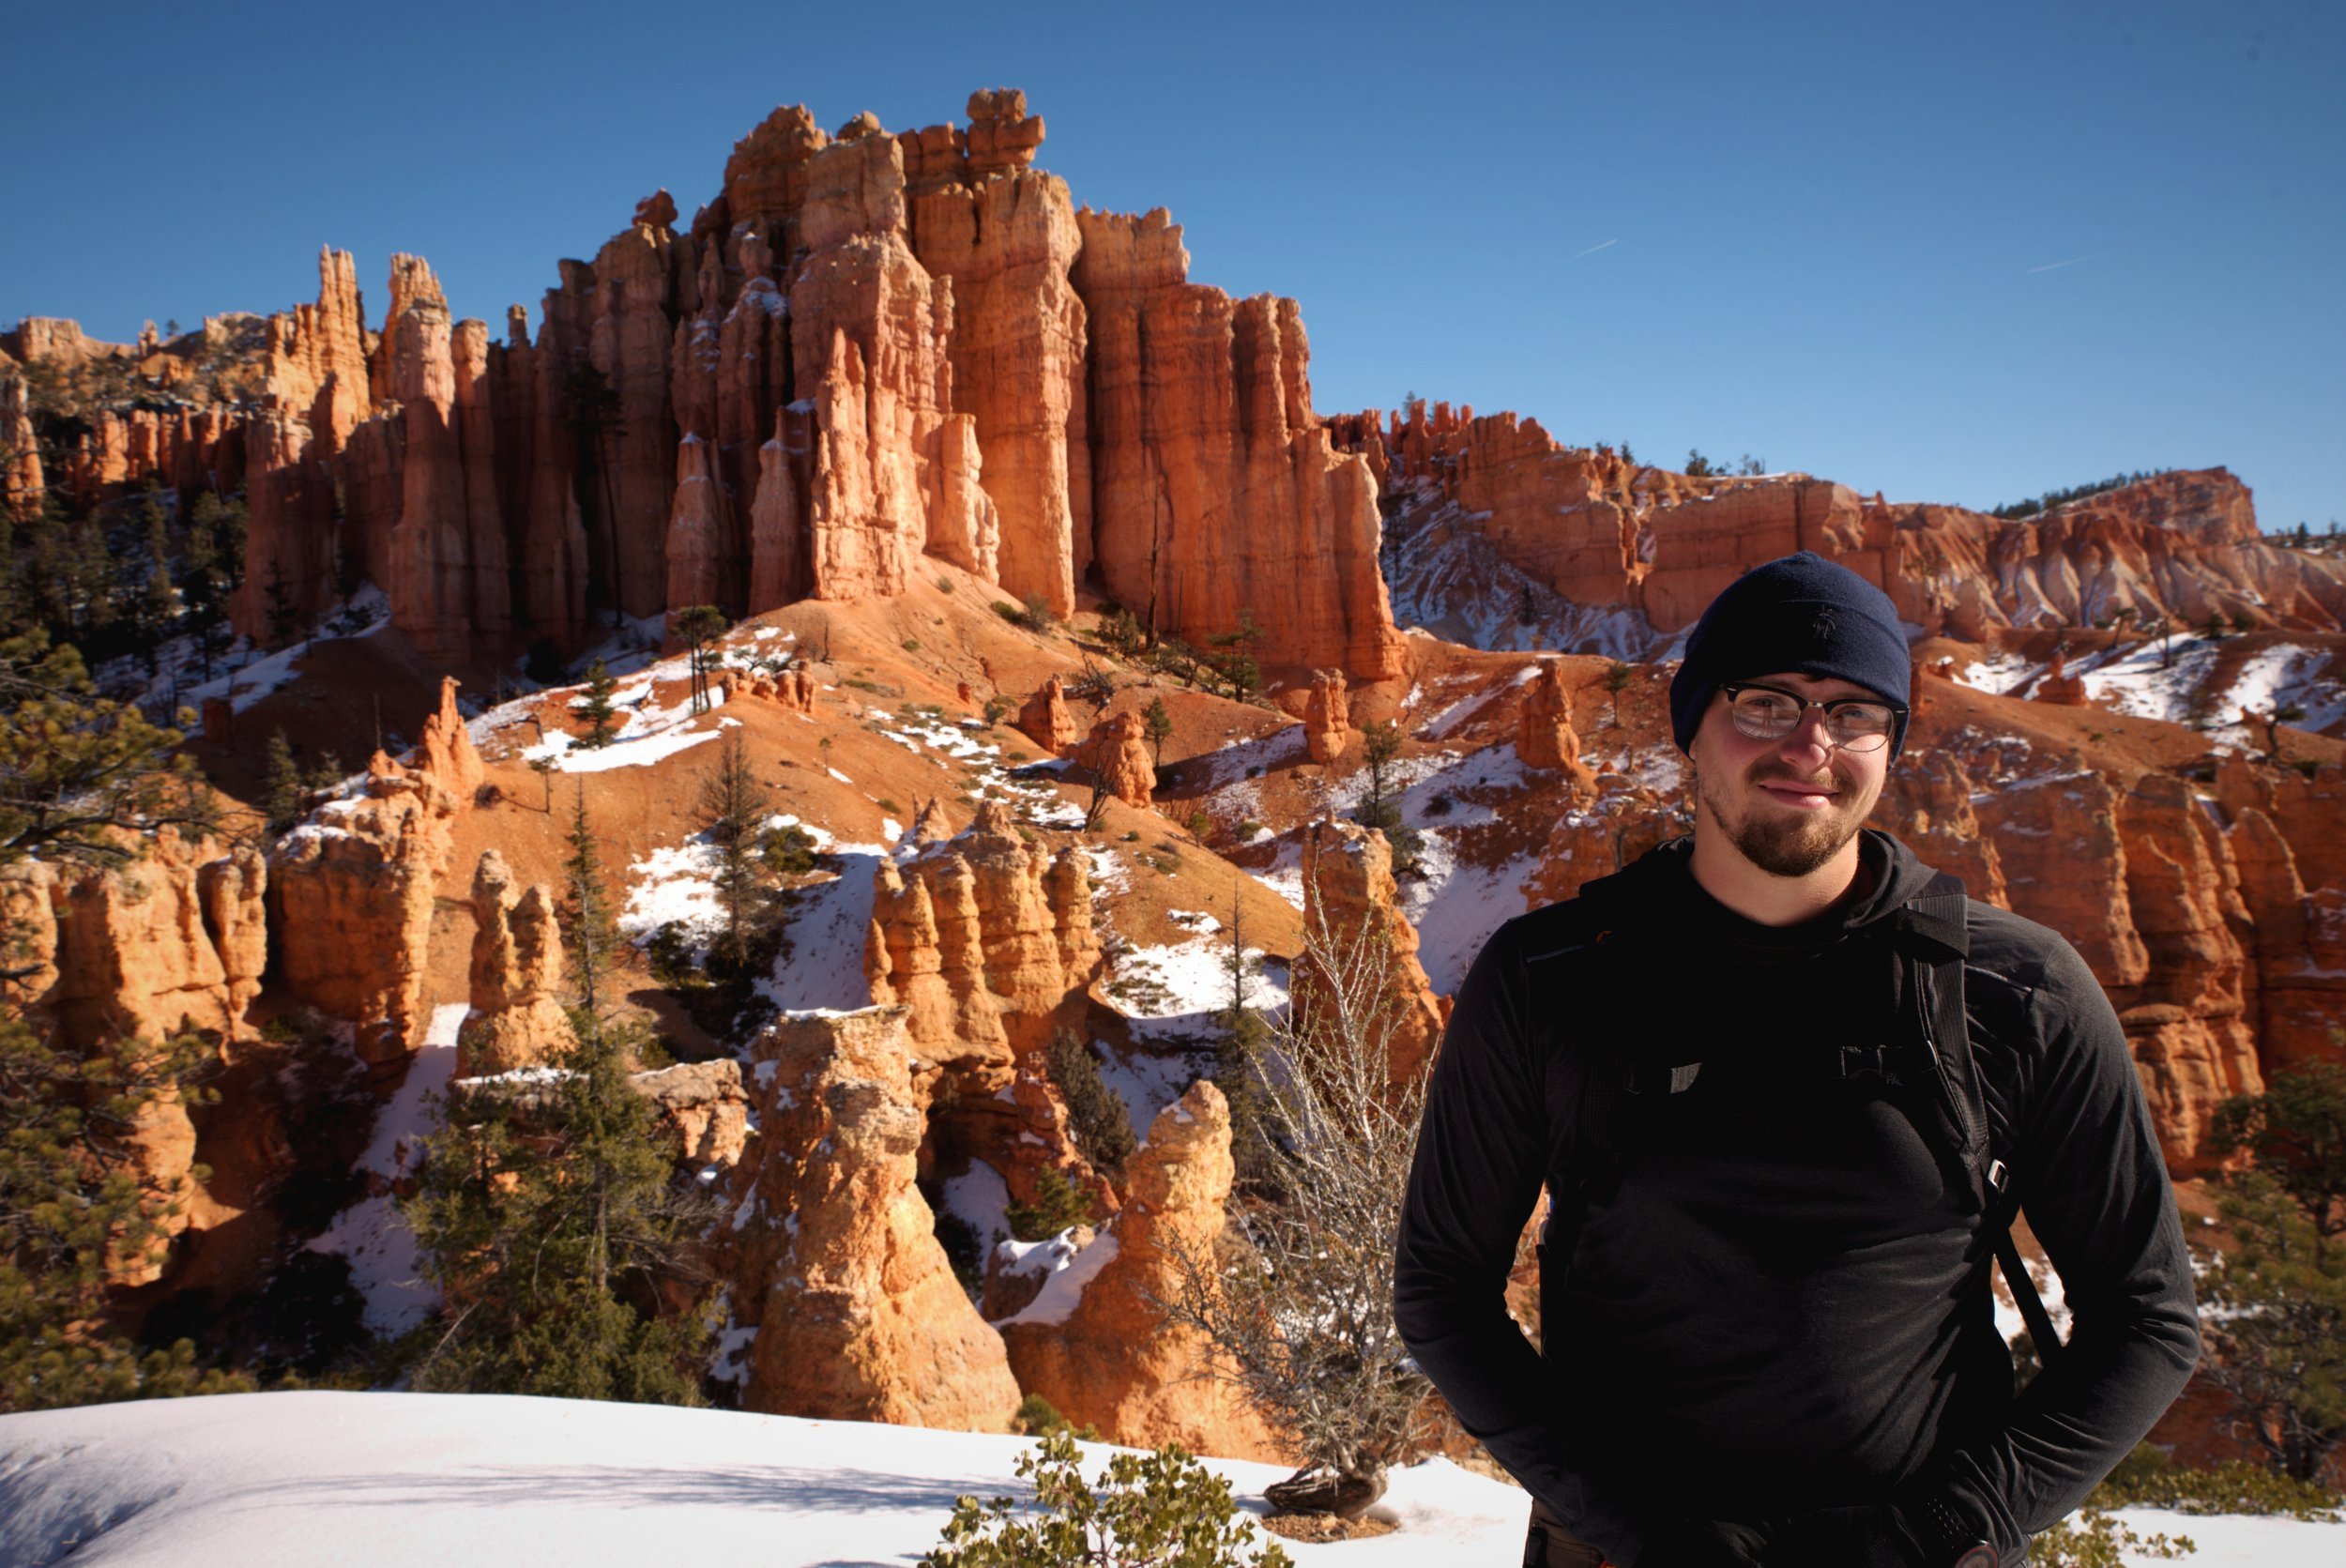 Ian stands in front of some incredible hoodoos in Fairyland Canyon.